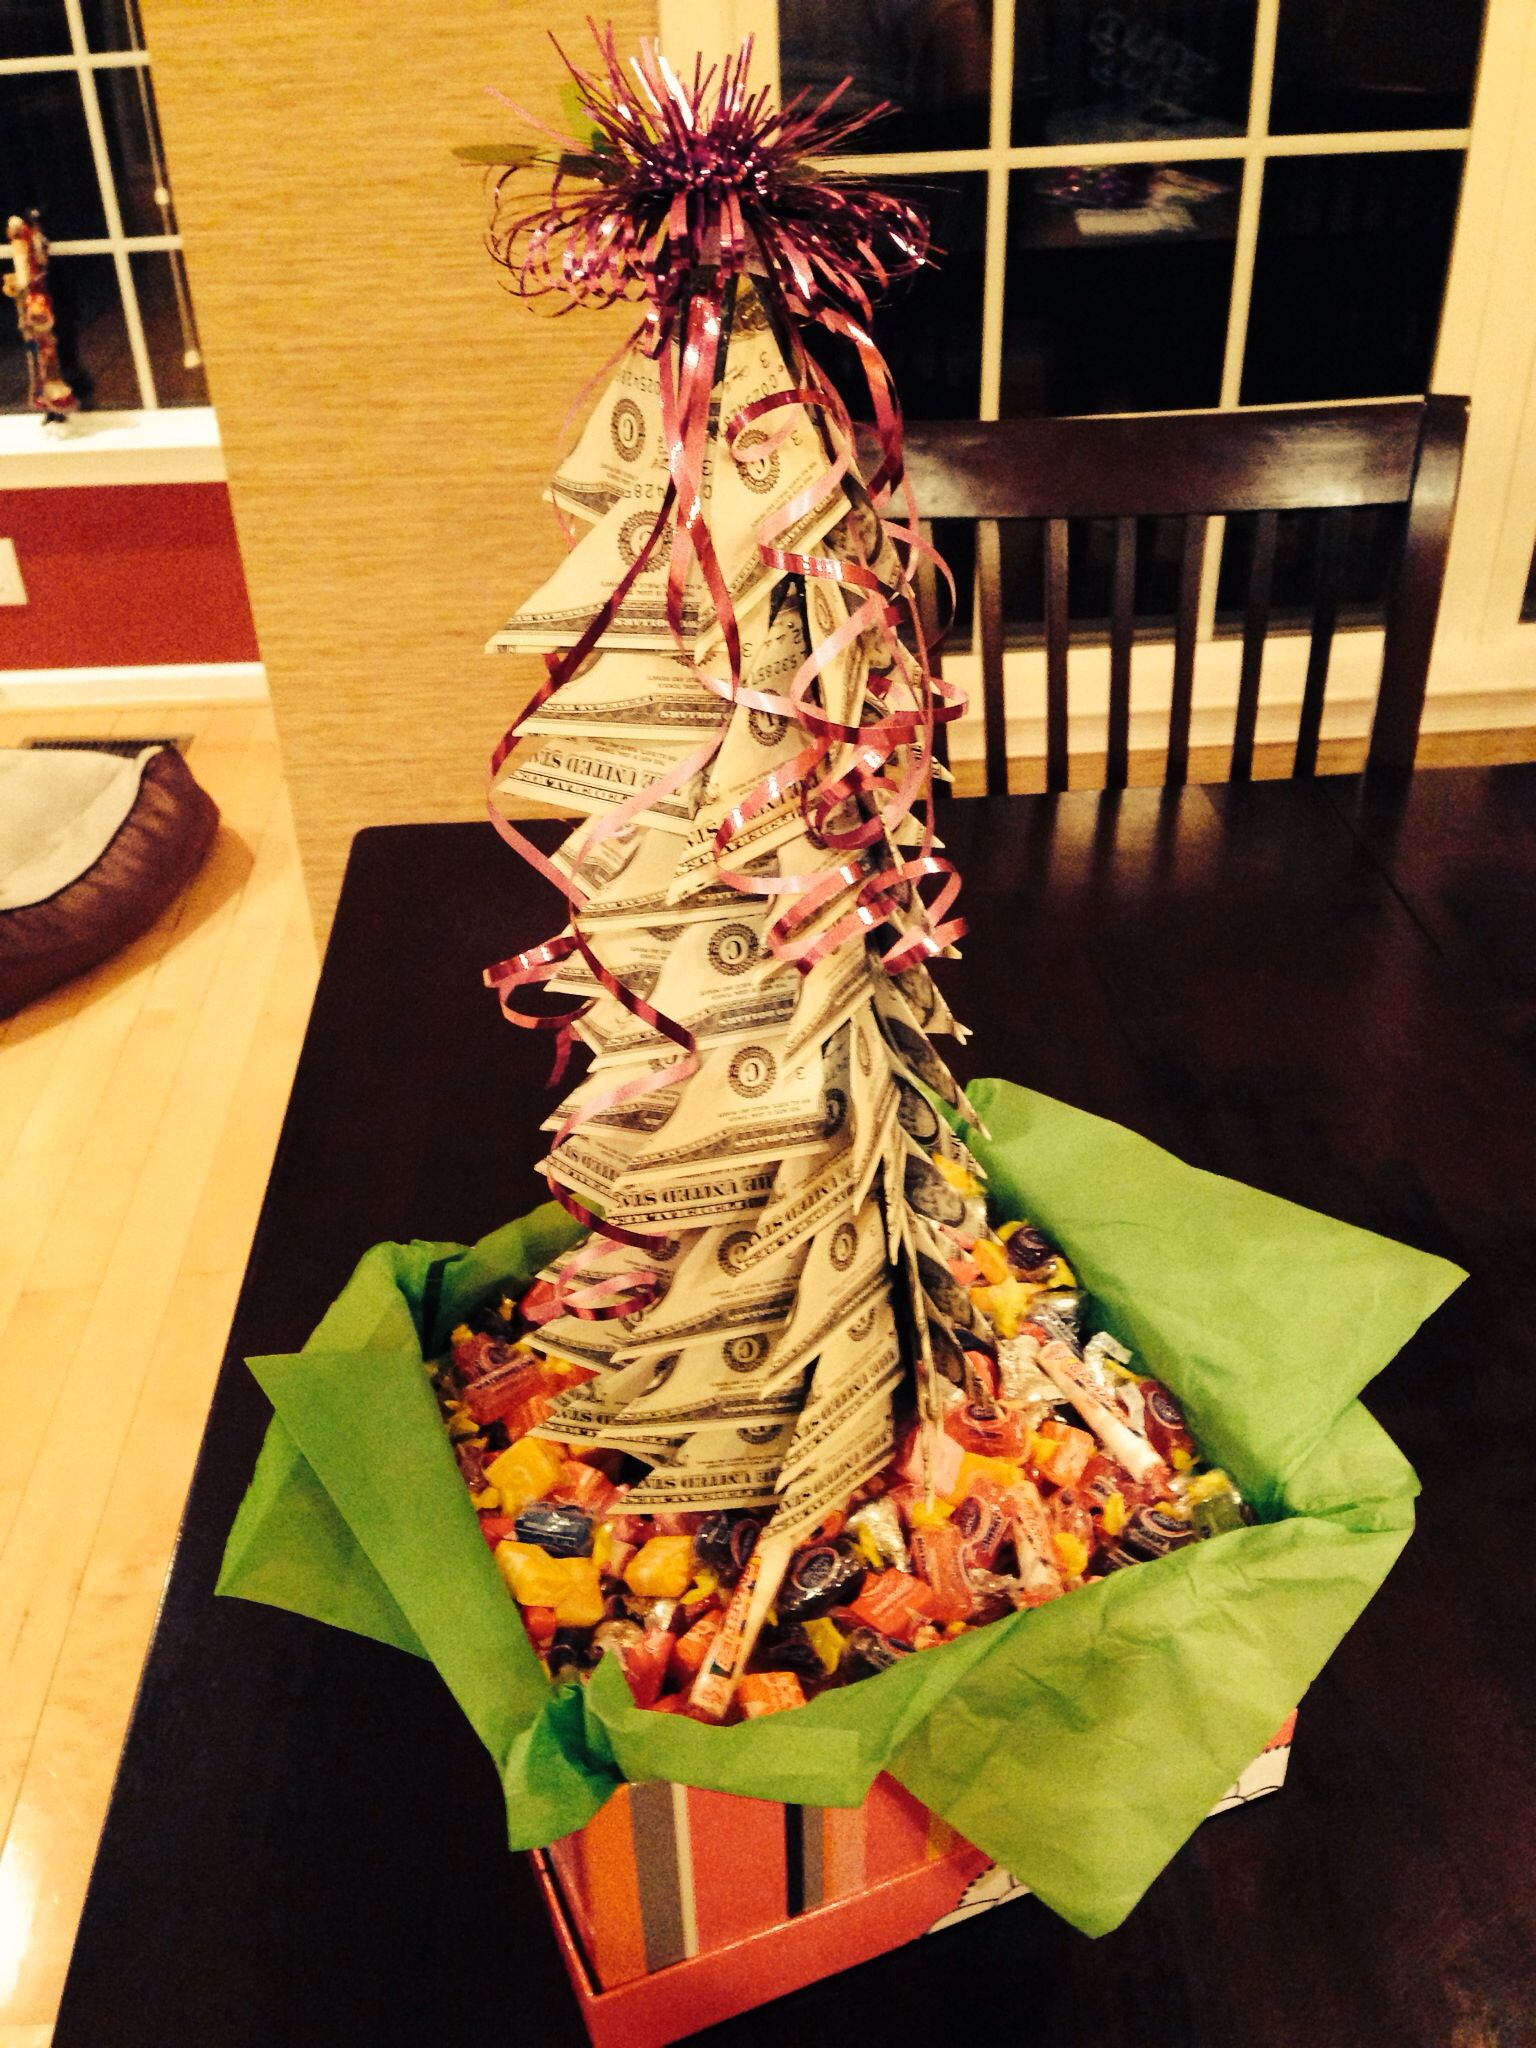 Finished product money tree in a box of sweets for a